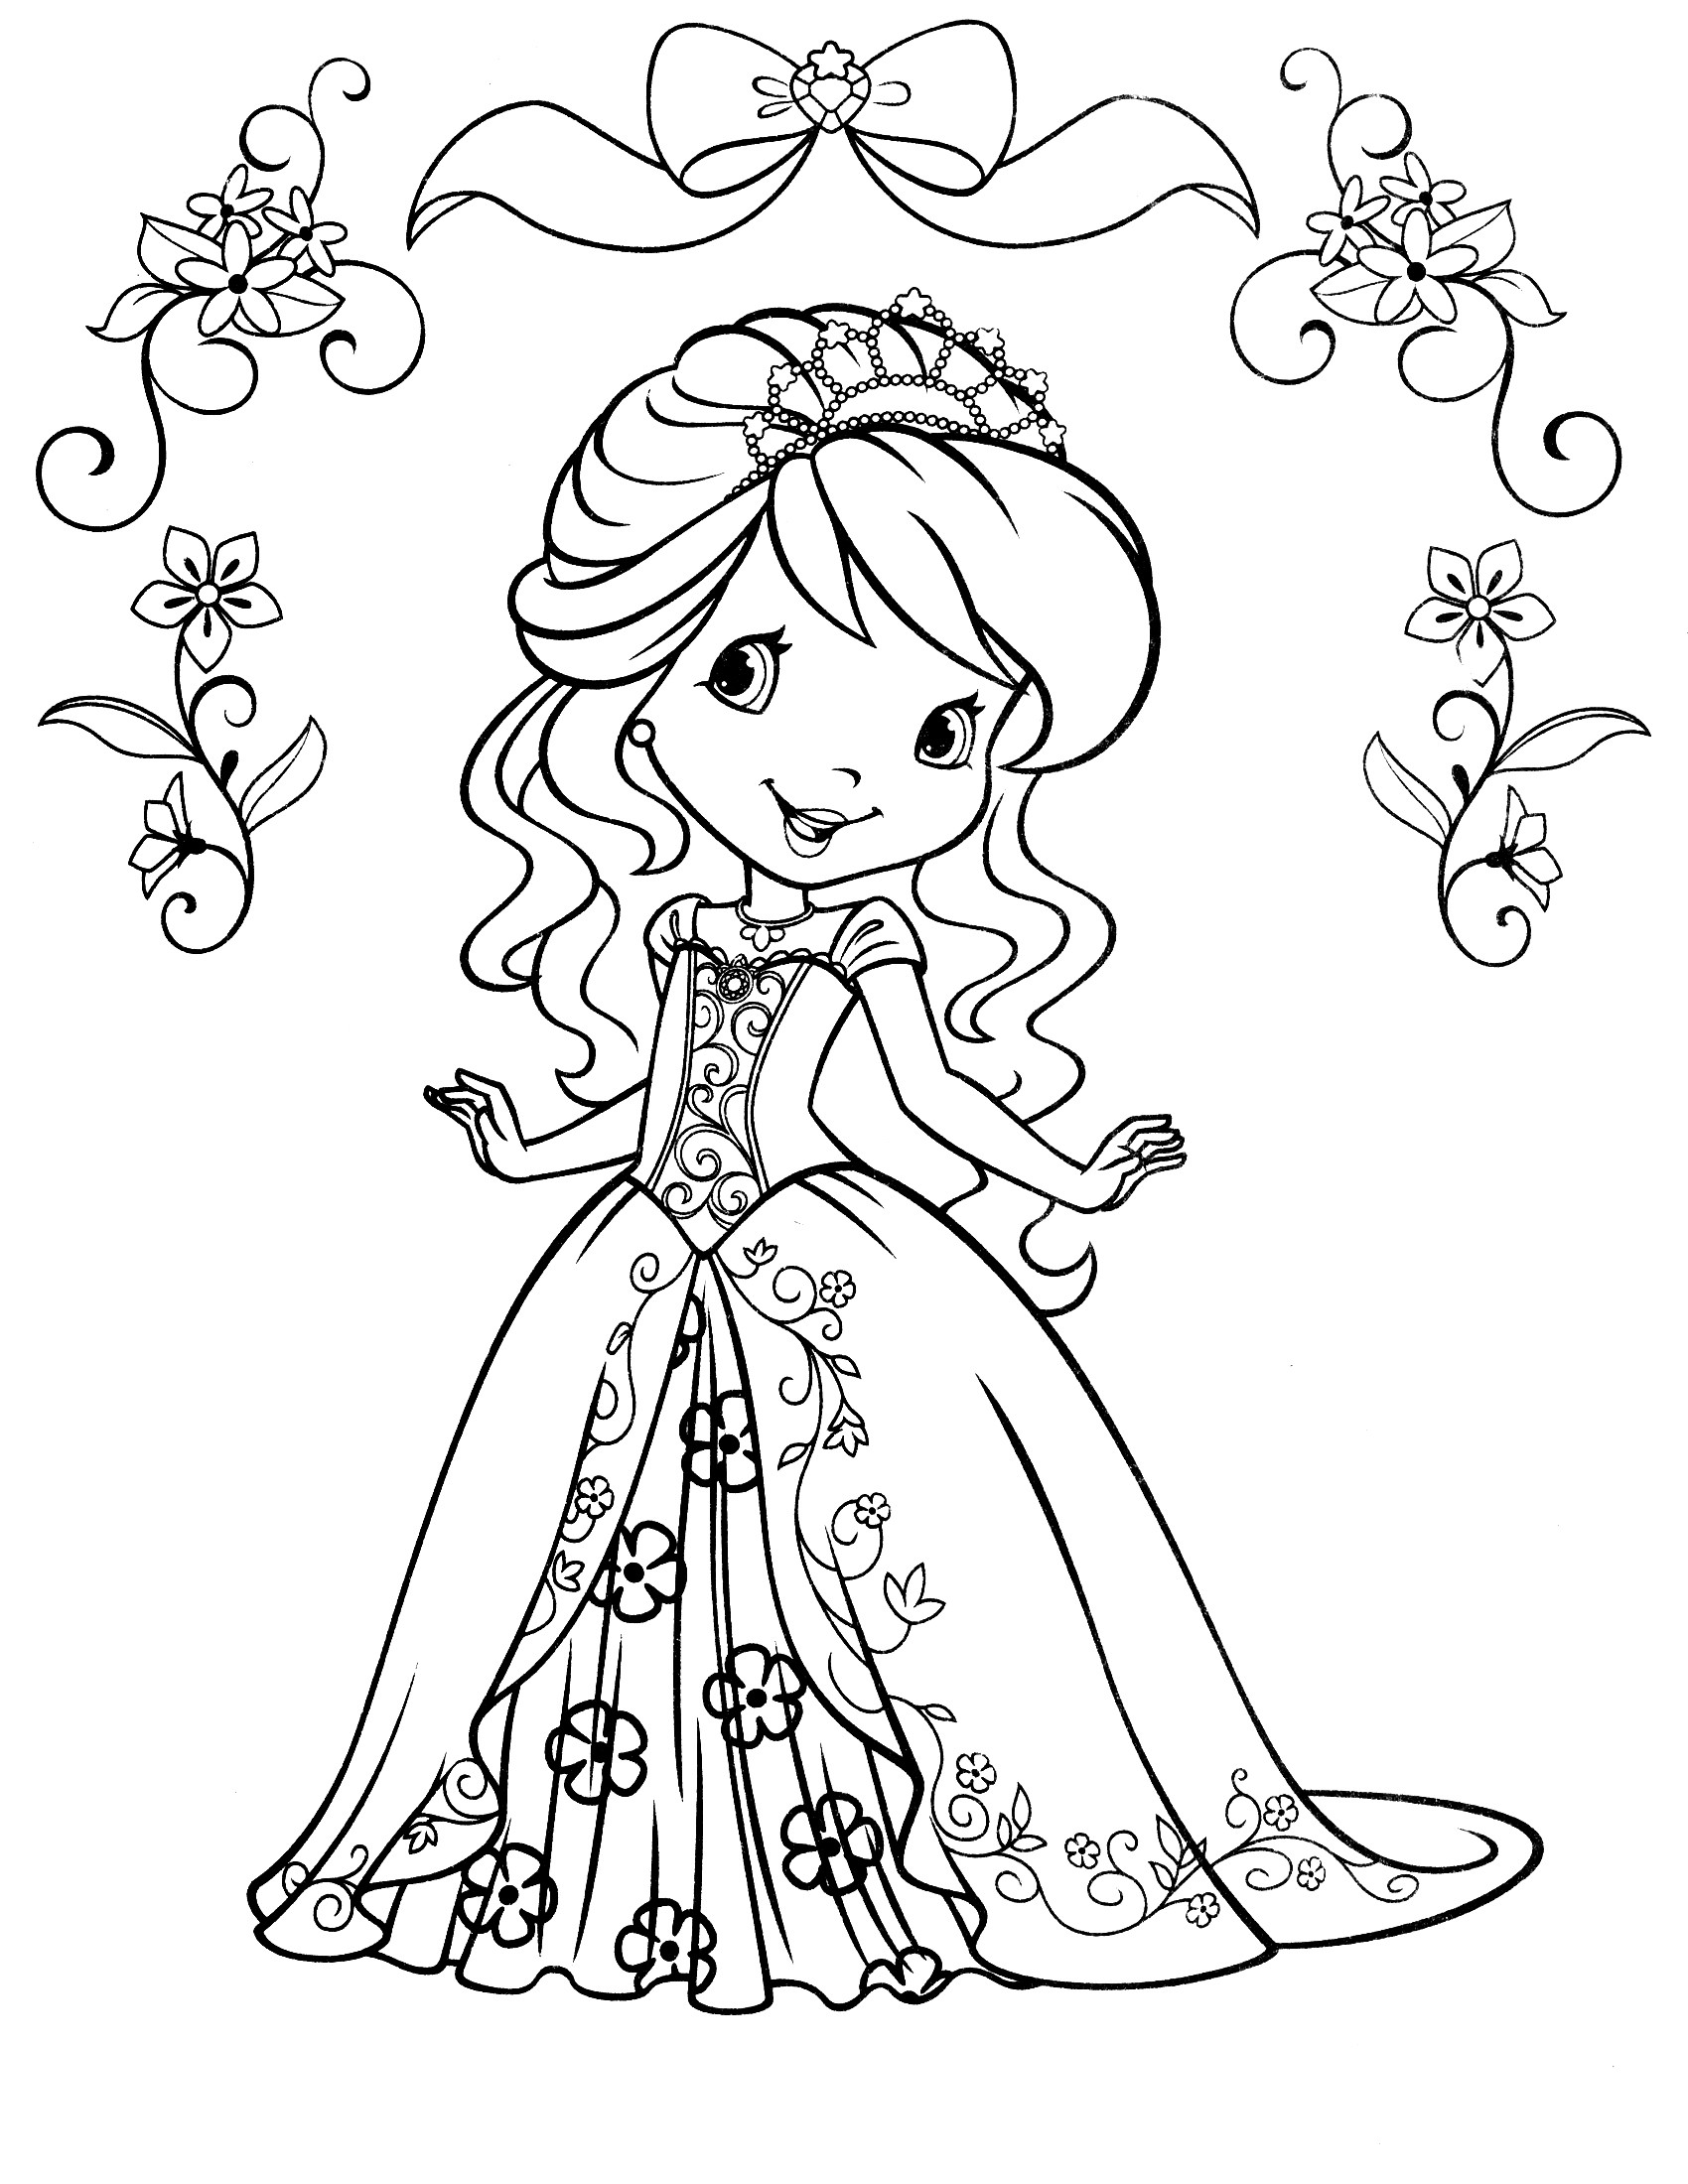 coloring page wallpaper 29 images